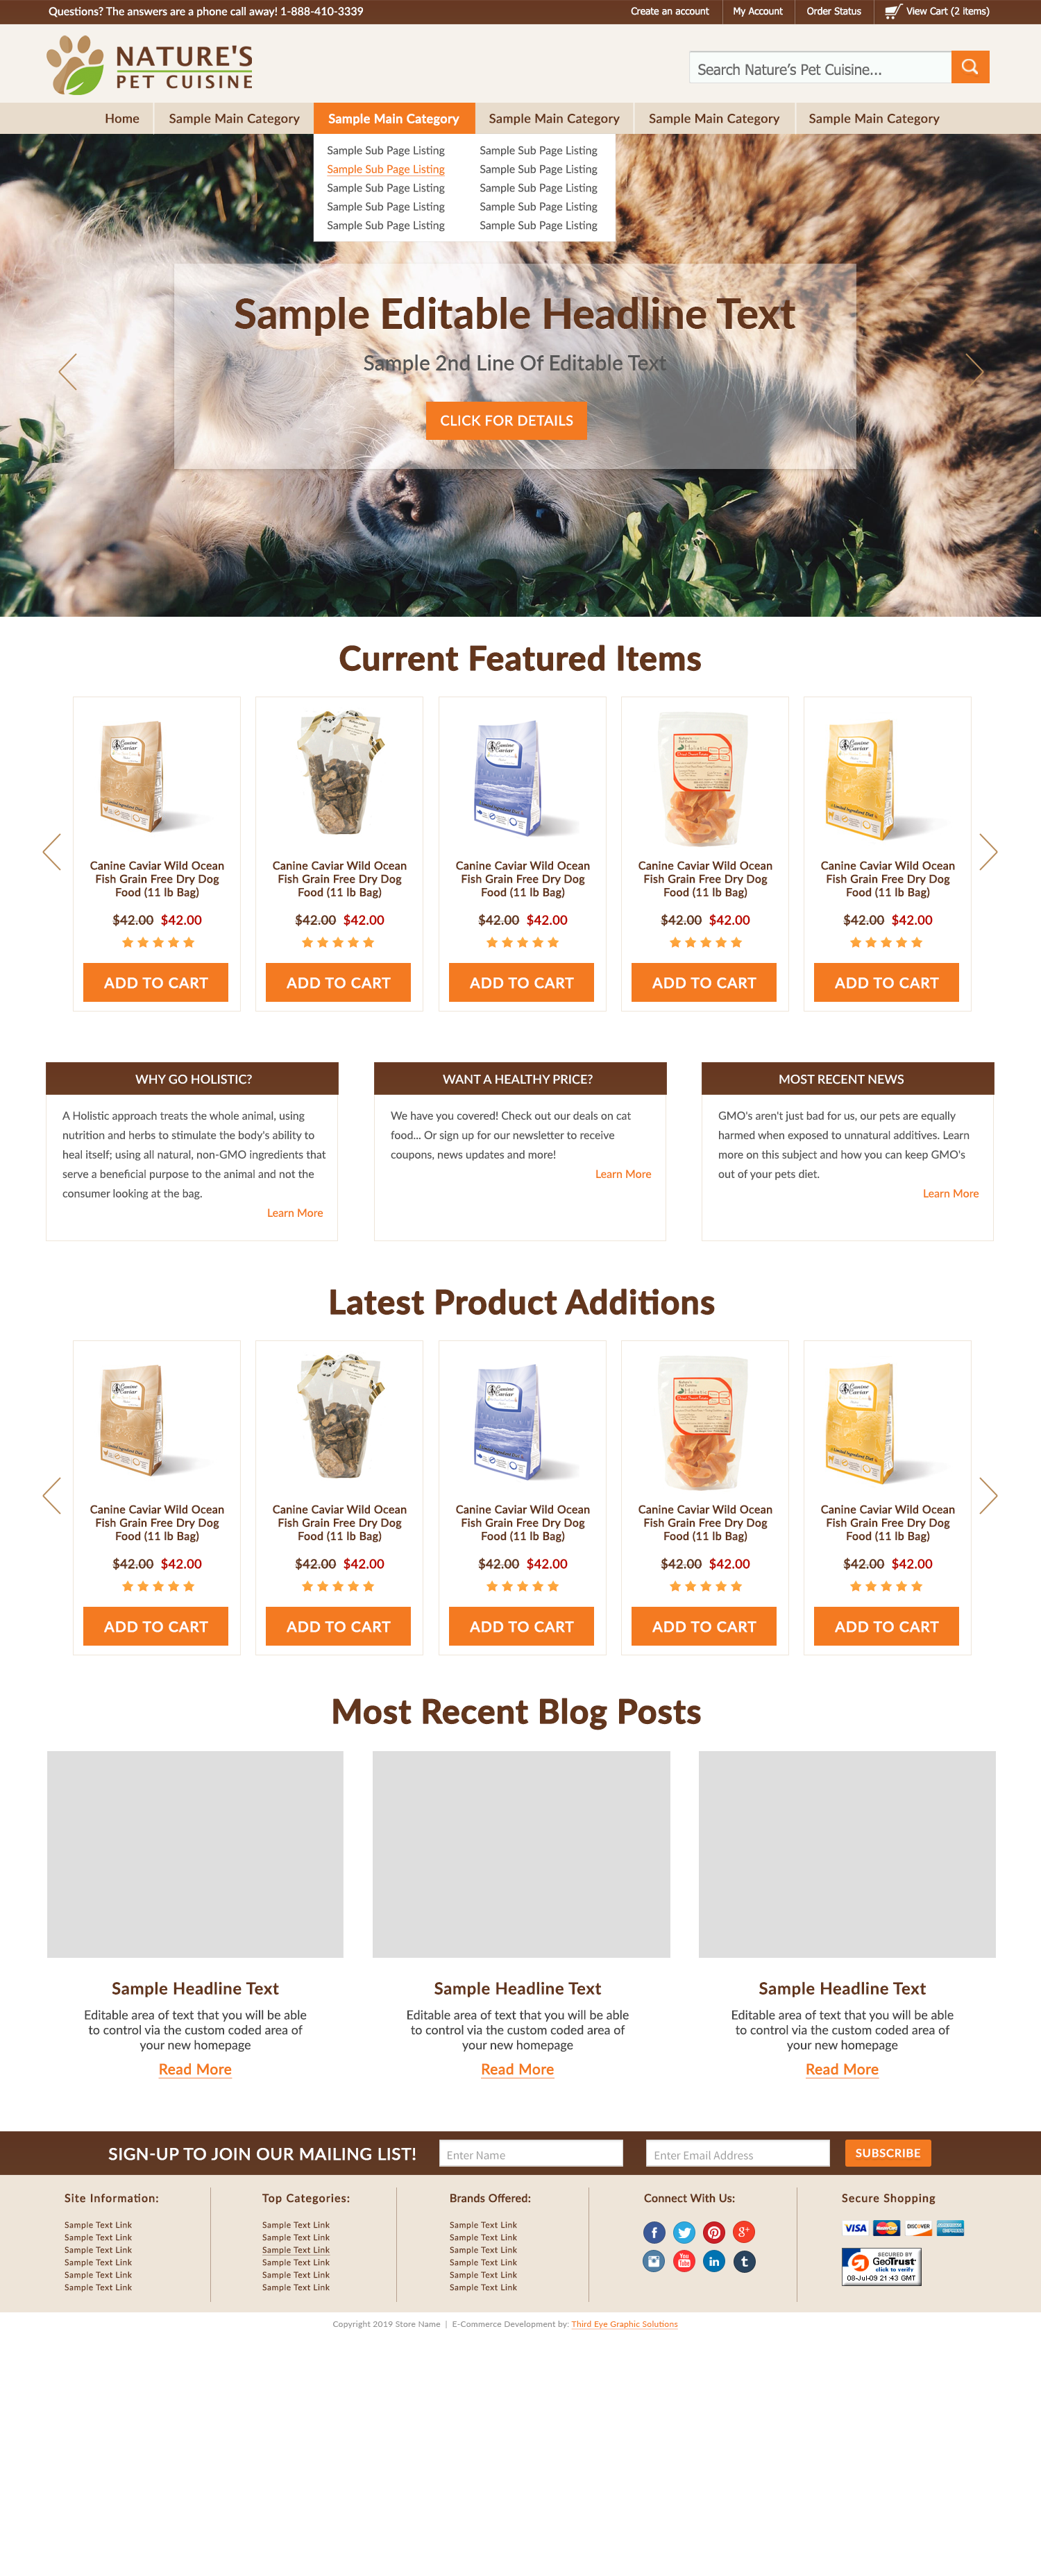 NaturesPet-home2.png